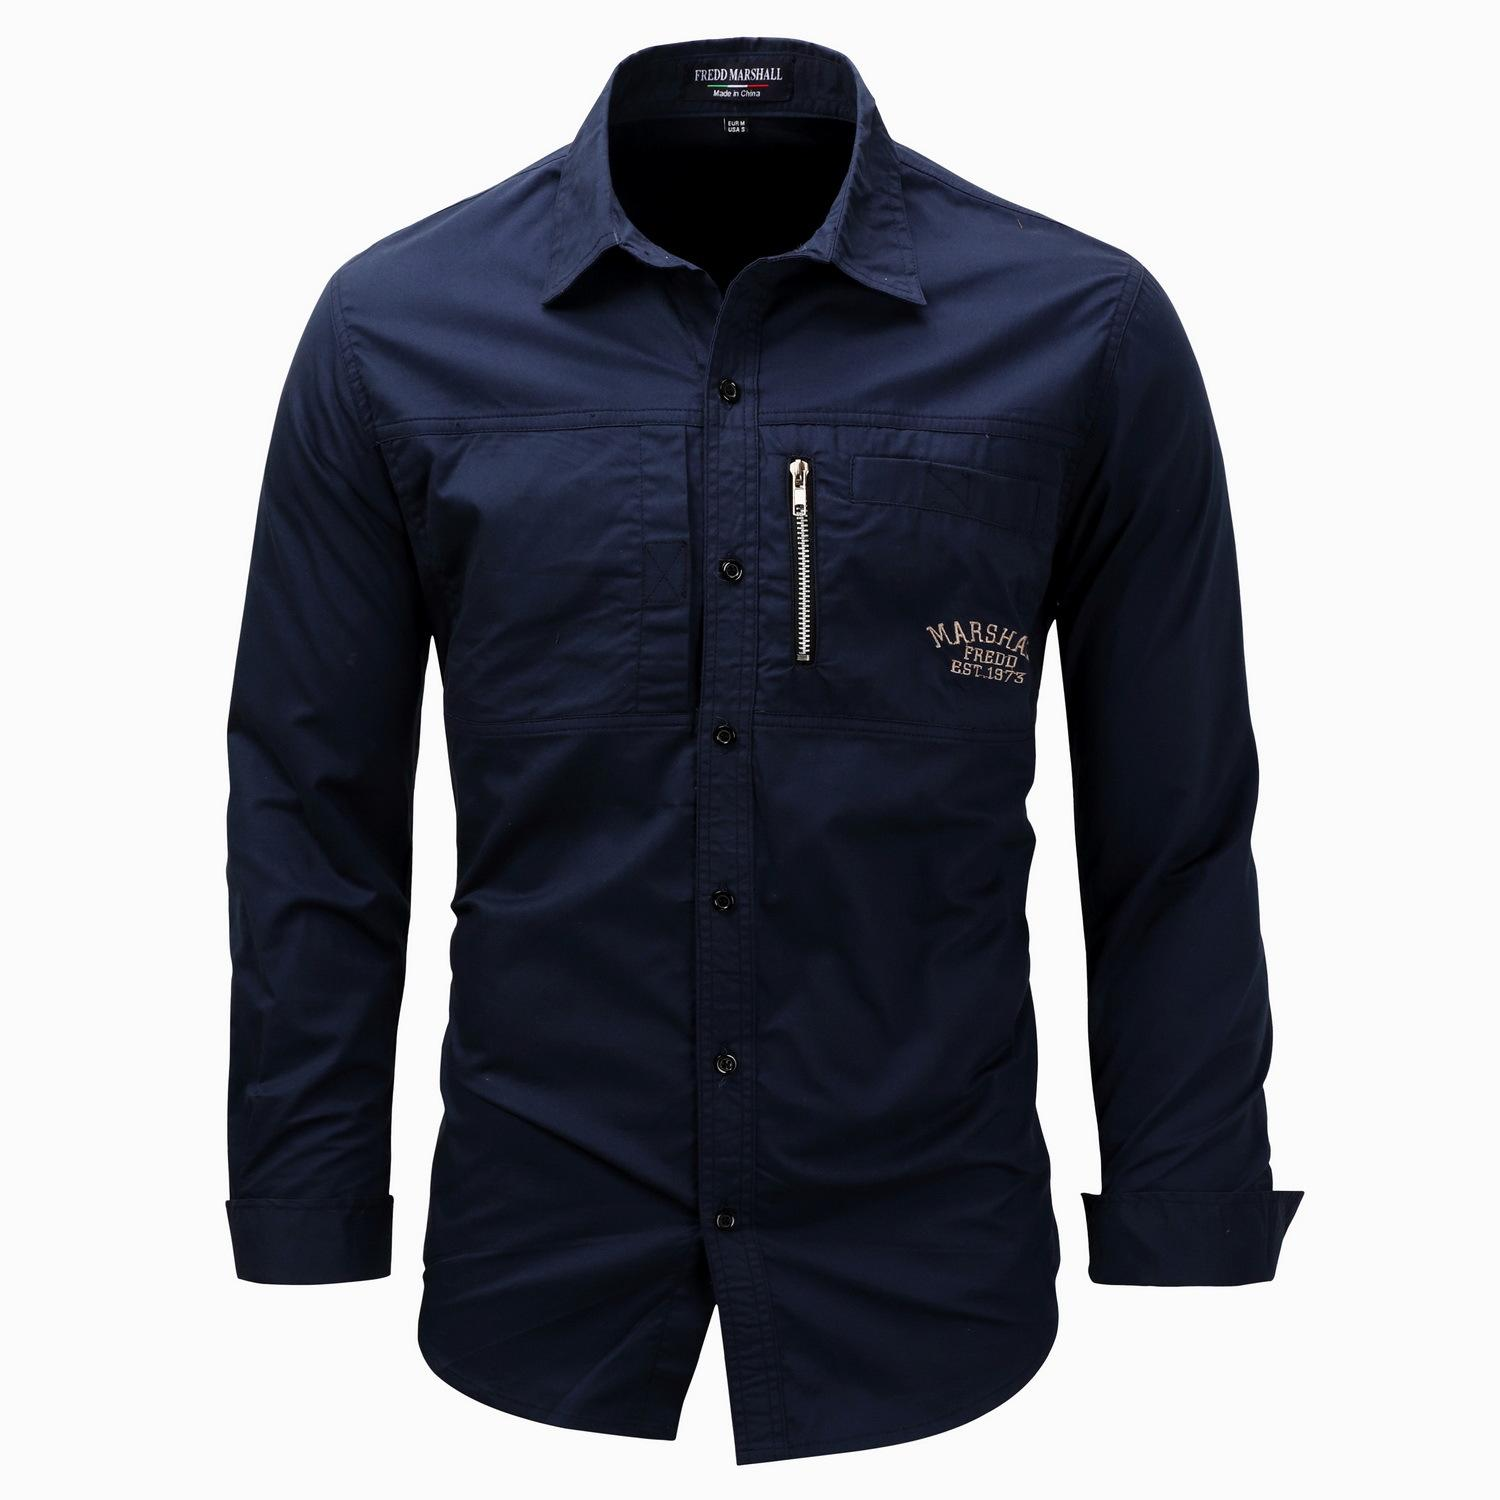 85945f797daab 2019 Wholesale Trend New Zipper And Pocket Decoration Mens 3XLT Shirts  Personalized Letter Embroidered Mens Designer Long Sleeve Shirts From  Szghhcool